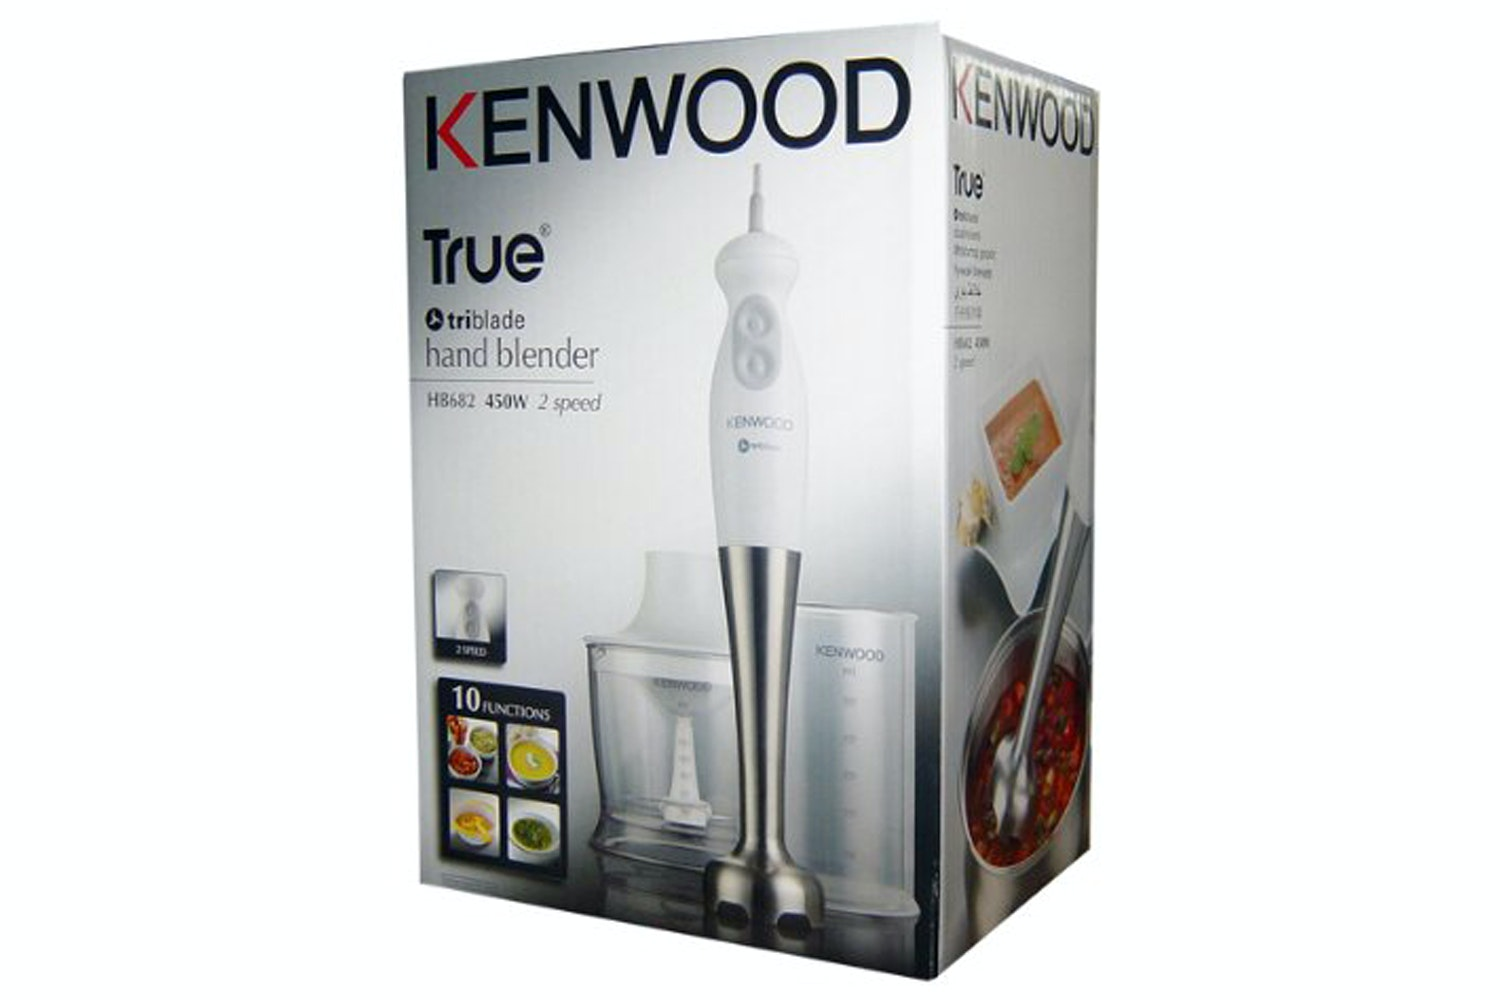 Kenwood Stick Blender | HB682